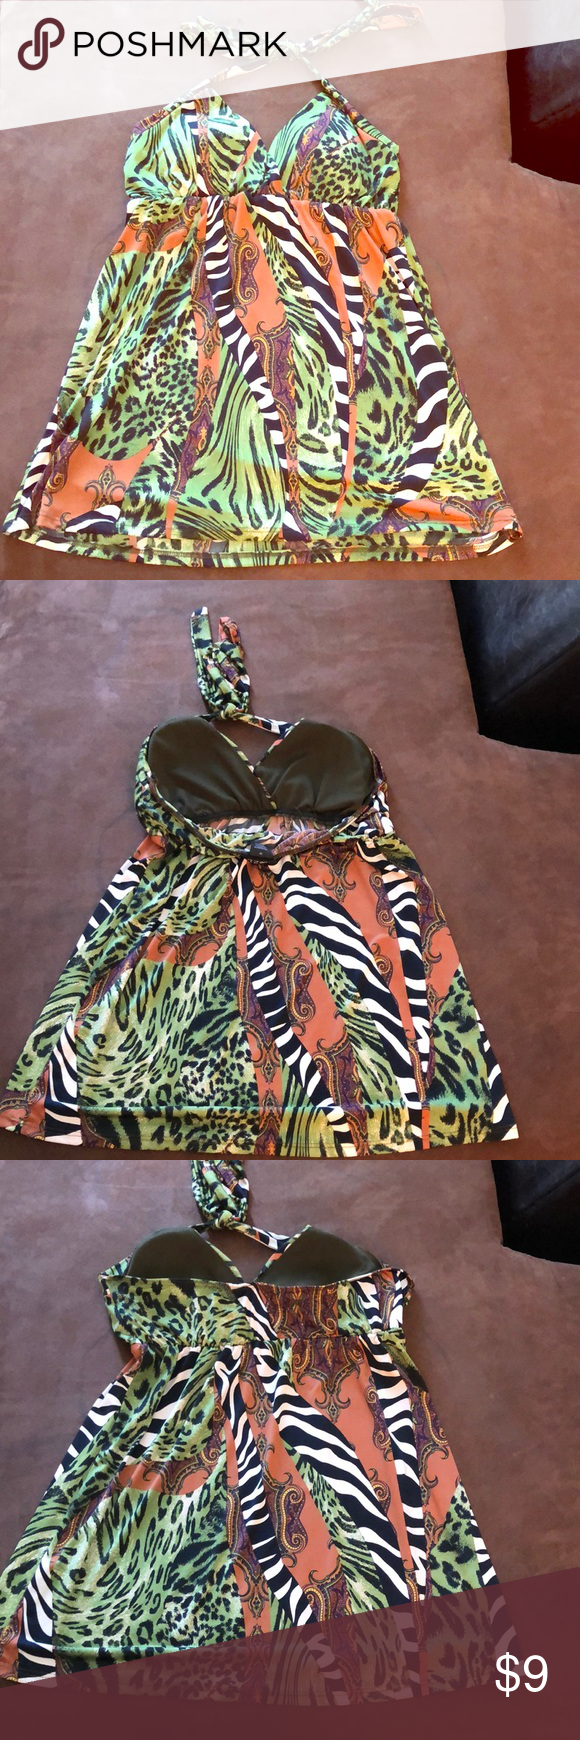 Jungle Patterned Halter Top Jungle pattern. Halter top style with padded cups for support. No bra necessary if you don't want. Stretchy for a good fit. New condition. Machine washable. Lay flat to dry. Elastic around the back to keep things where the need to be. Rue21 Tops #junglepattern